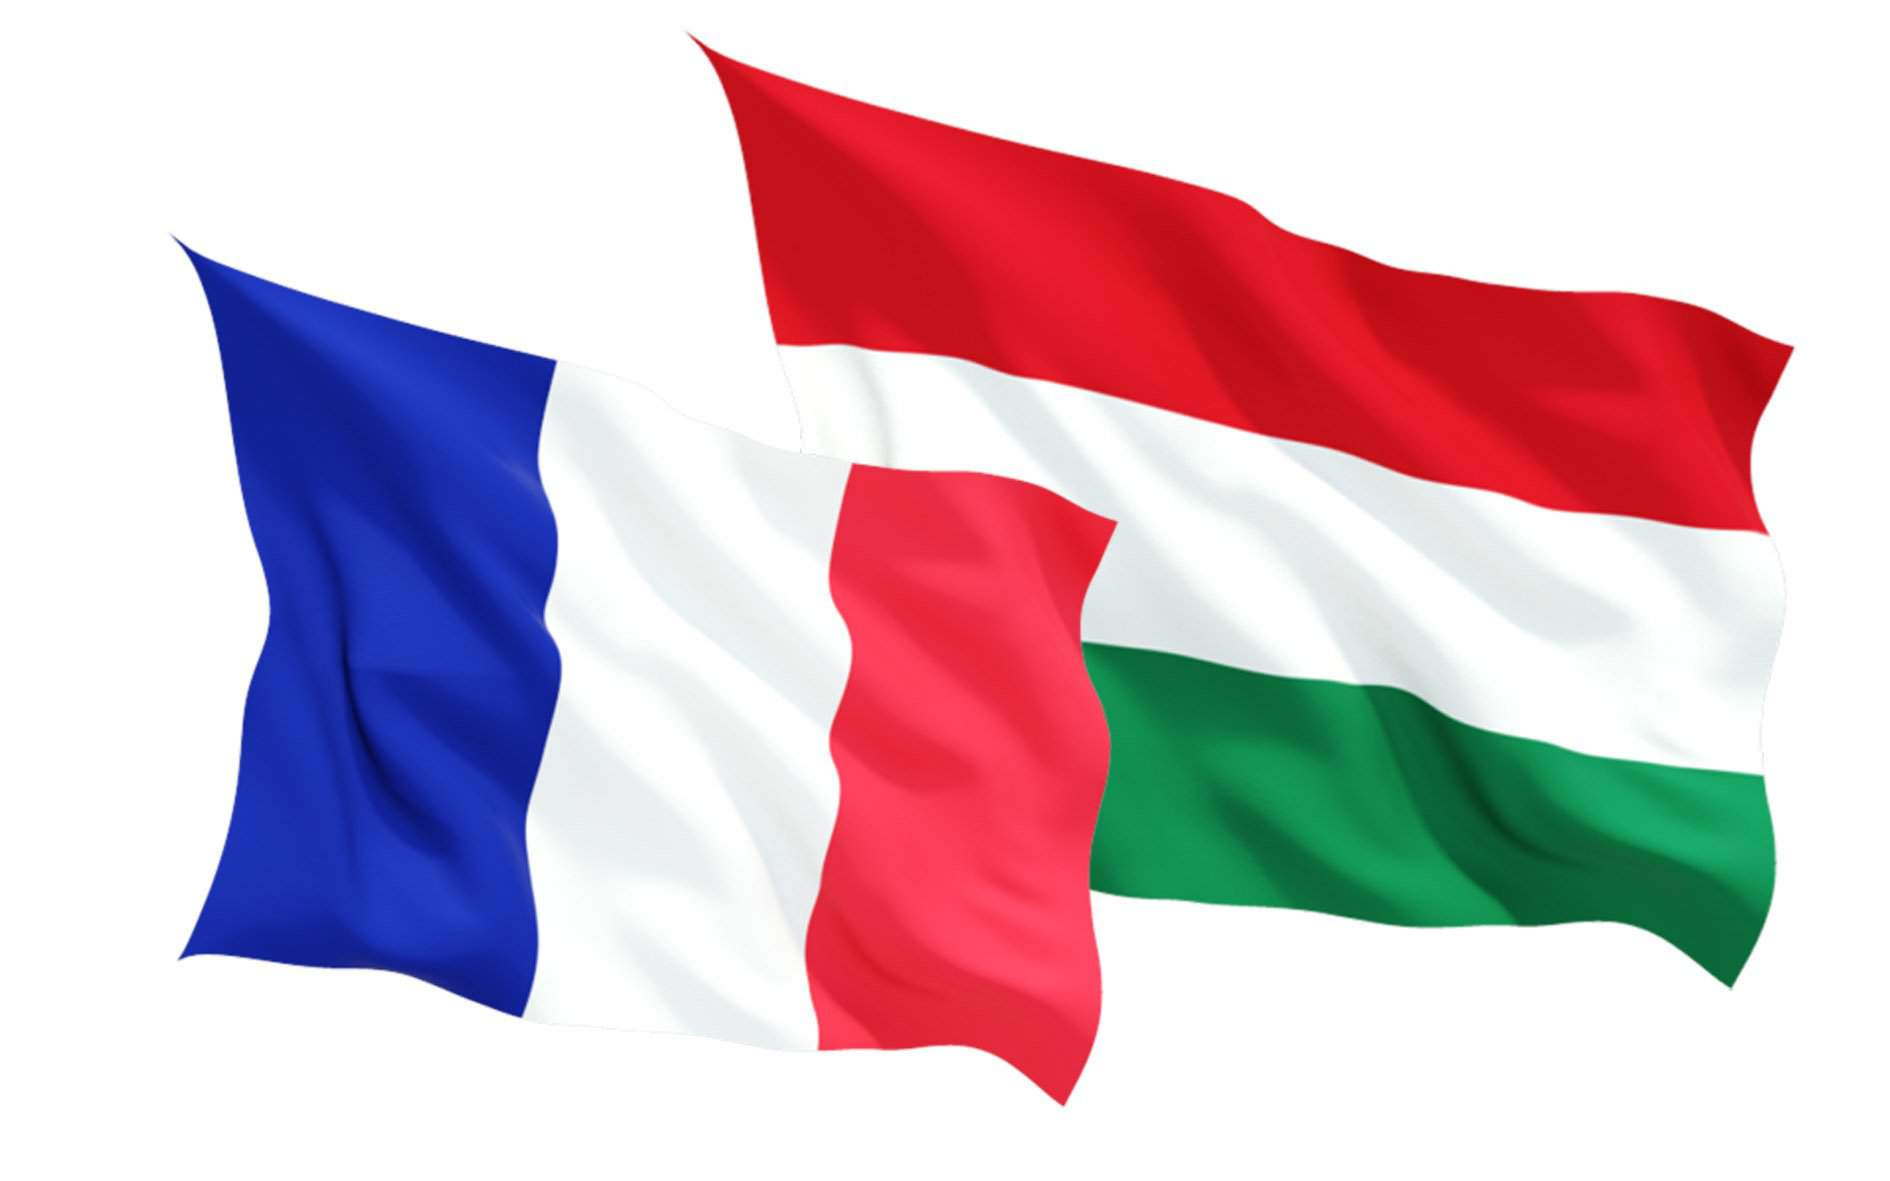 France & Hungary conclude military, nuclear energy agreements